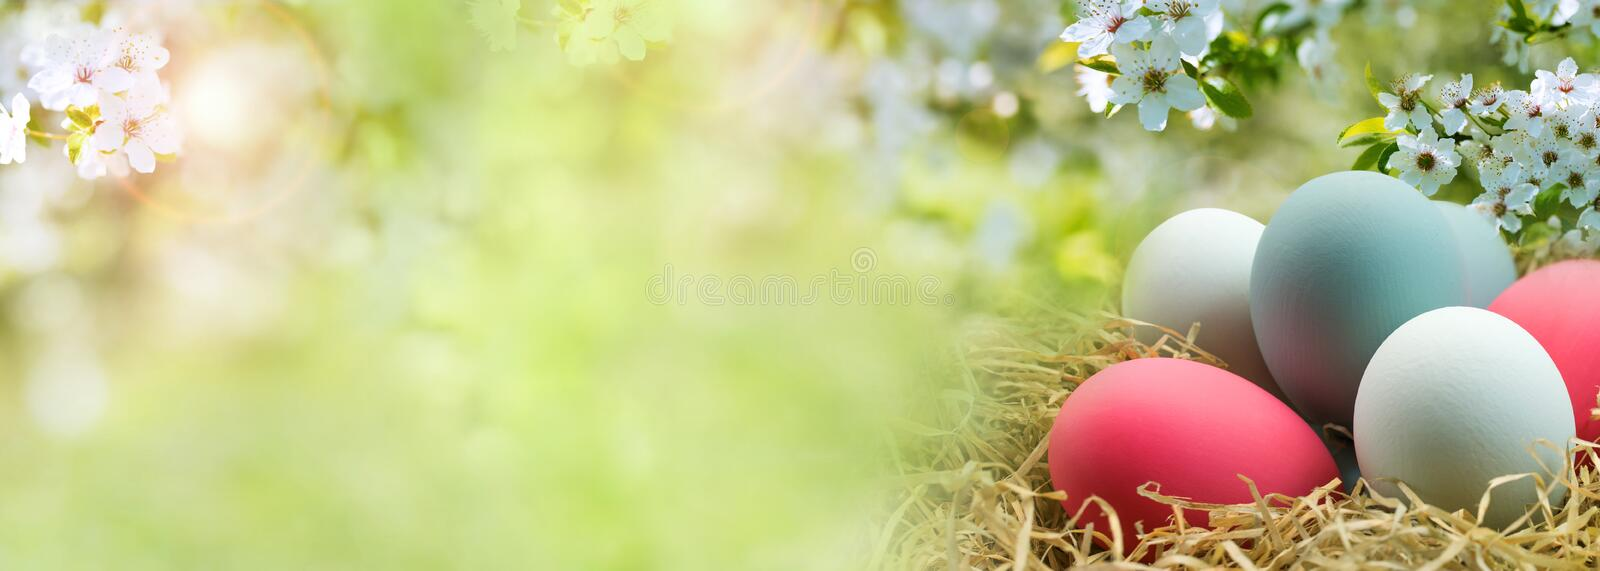 Colorful easter eggs in spring. Colorful easter eggs in a sunny spring landscape for a background royalty free stock photos